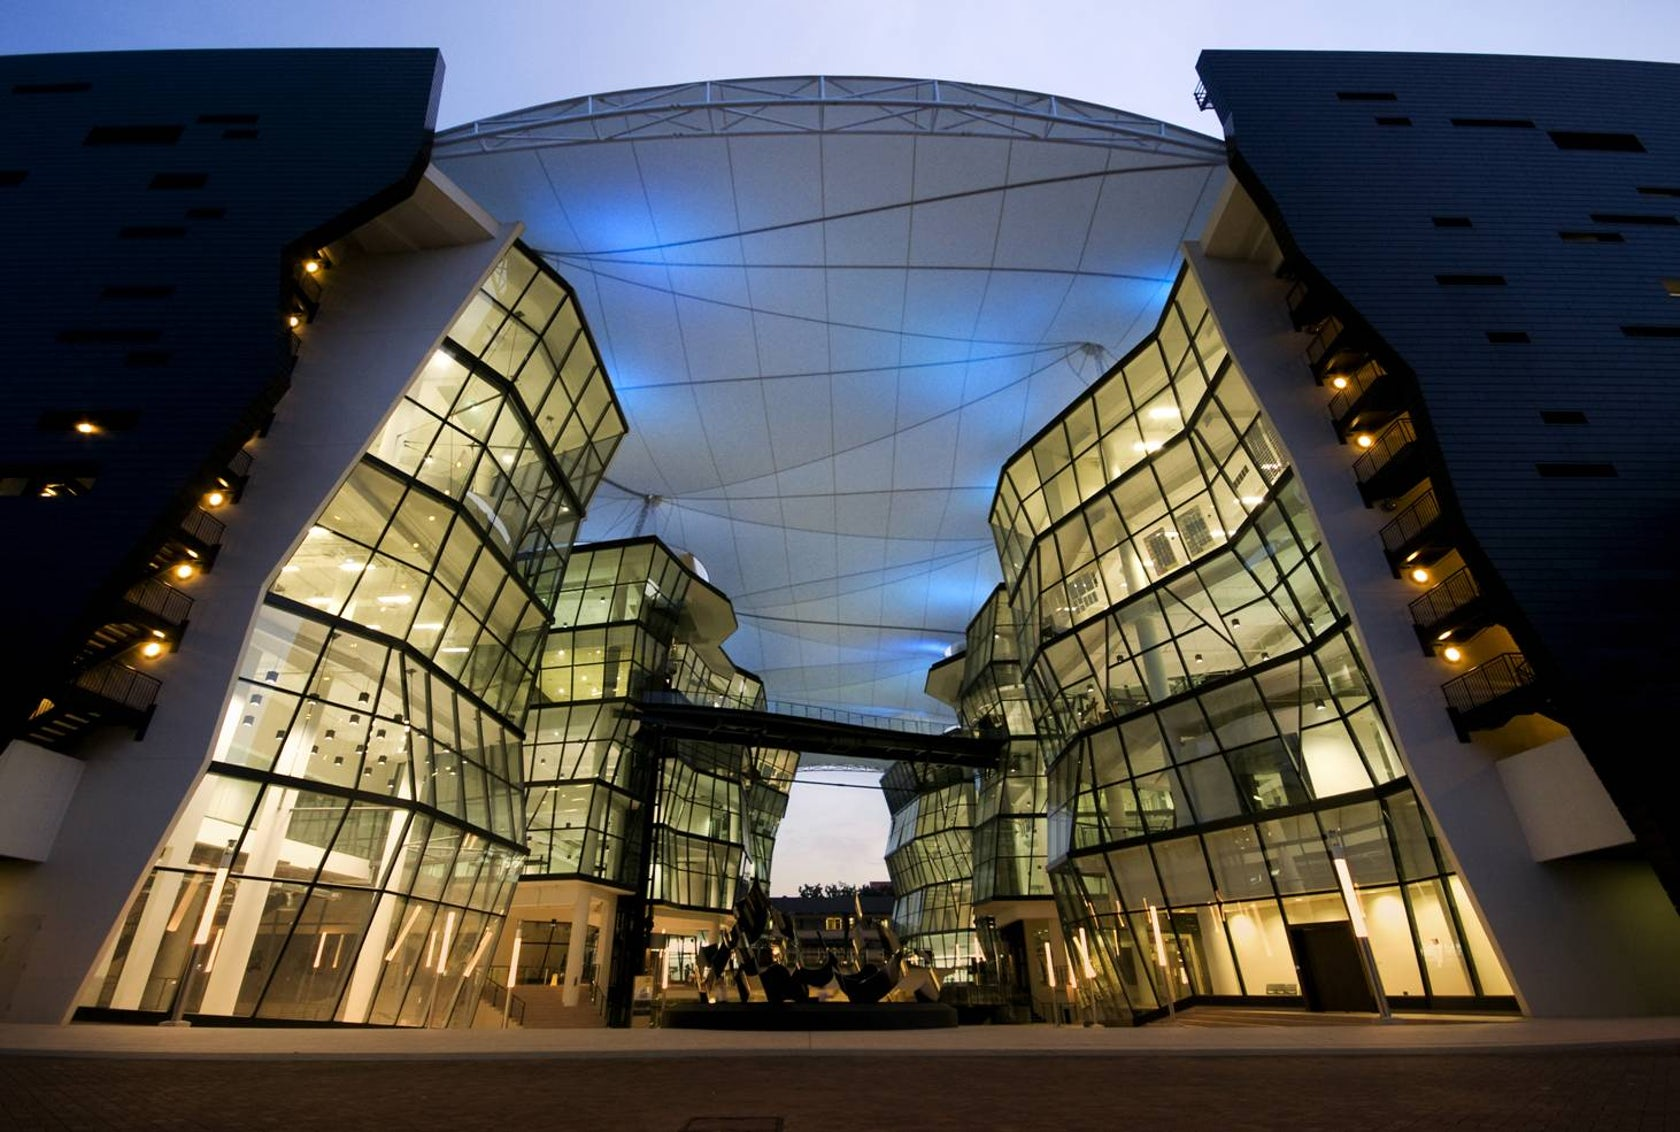 Rsp architects planners engineers architizer - Best architects in the world ...